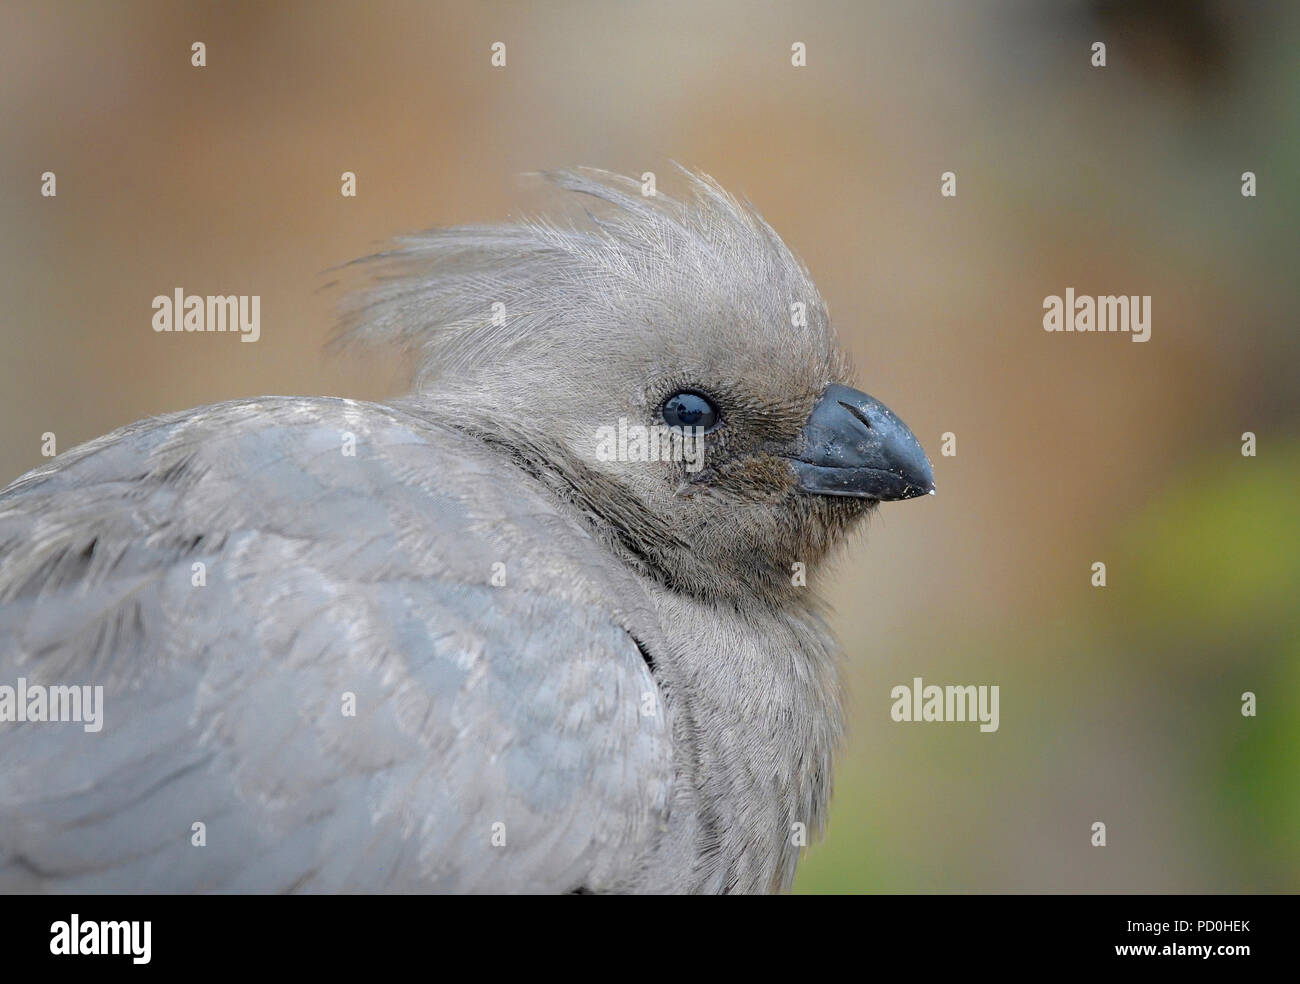 South Africa, a fantastic travel destination to experience third and first world together. Grey turaco close-up in Kruger National Park. Go away bird. - Stock Image